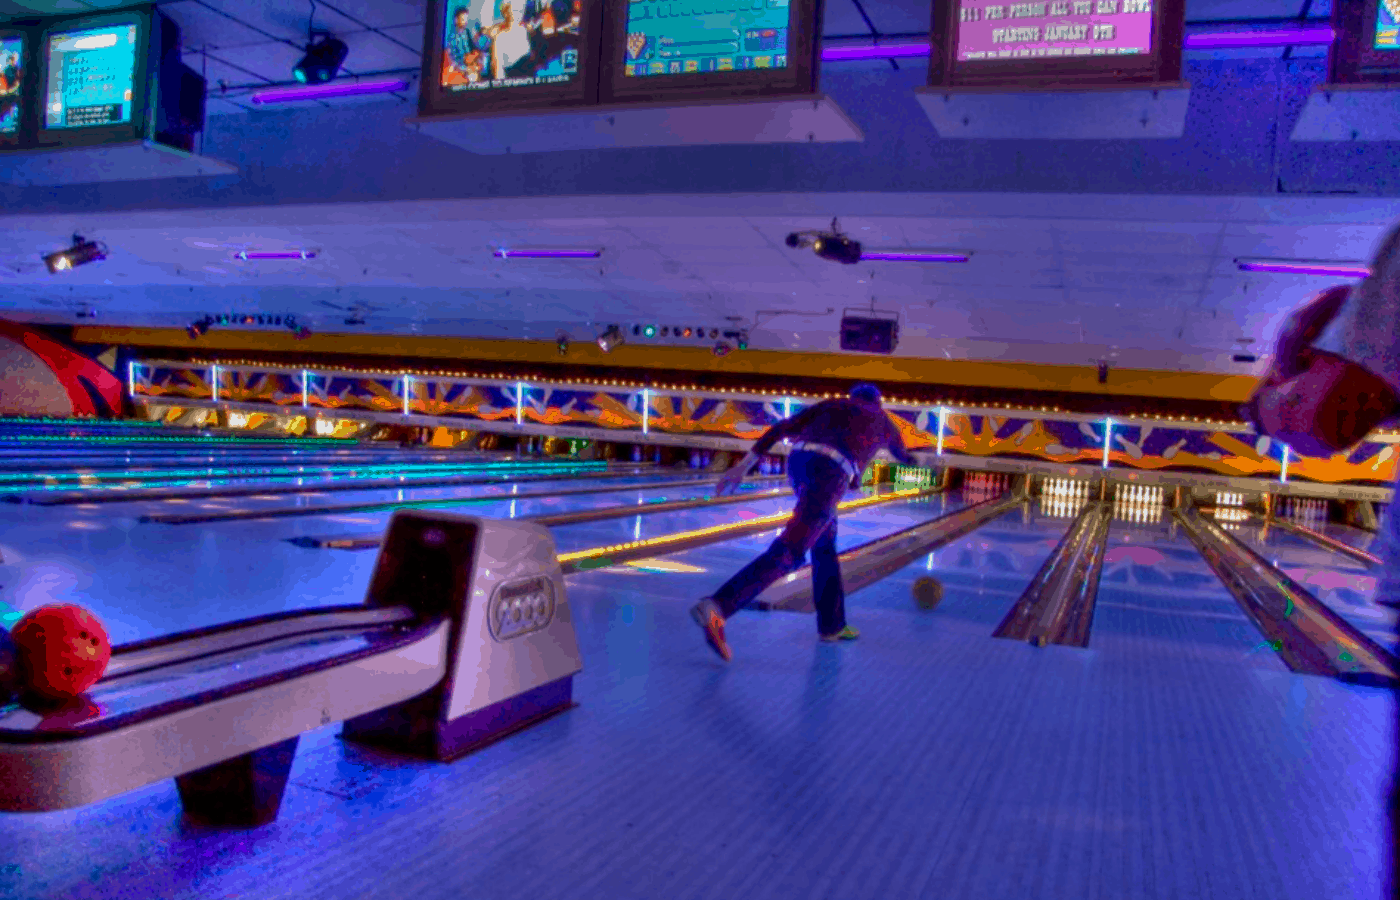 best colors to wear cosmic bowling